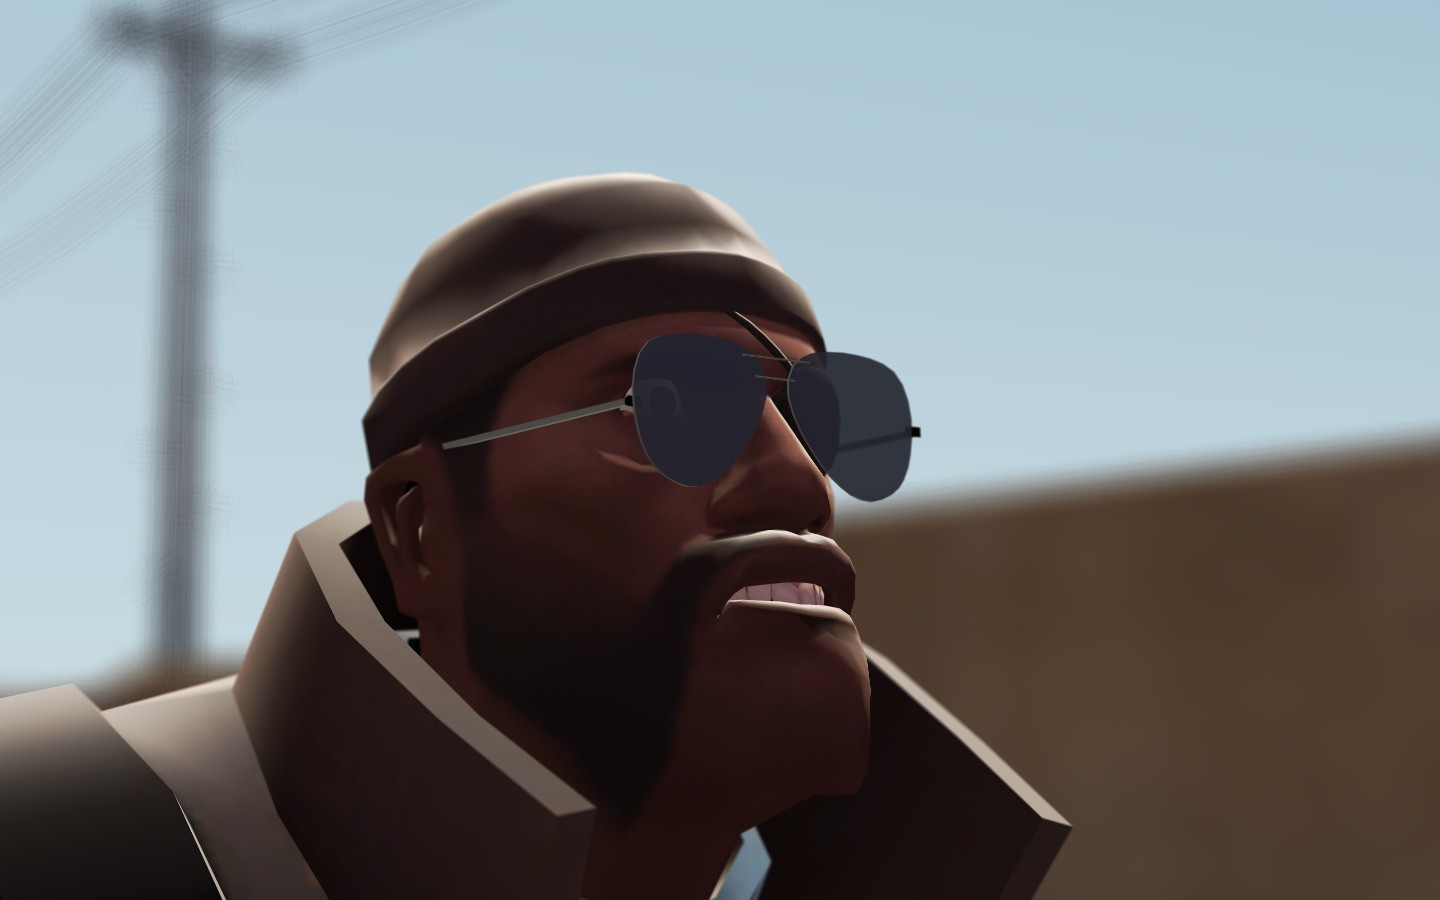 Demoman TF2 team fortress